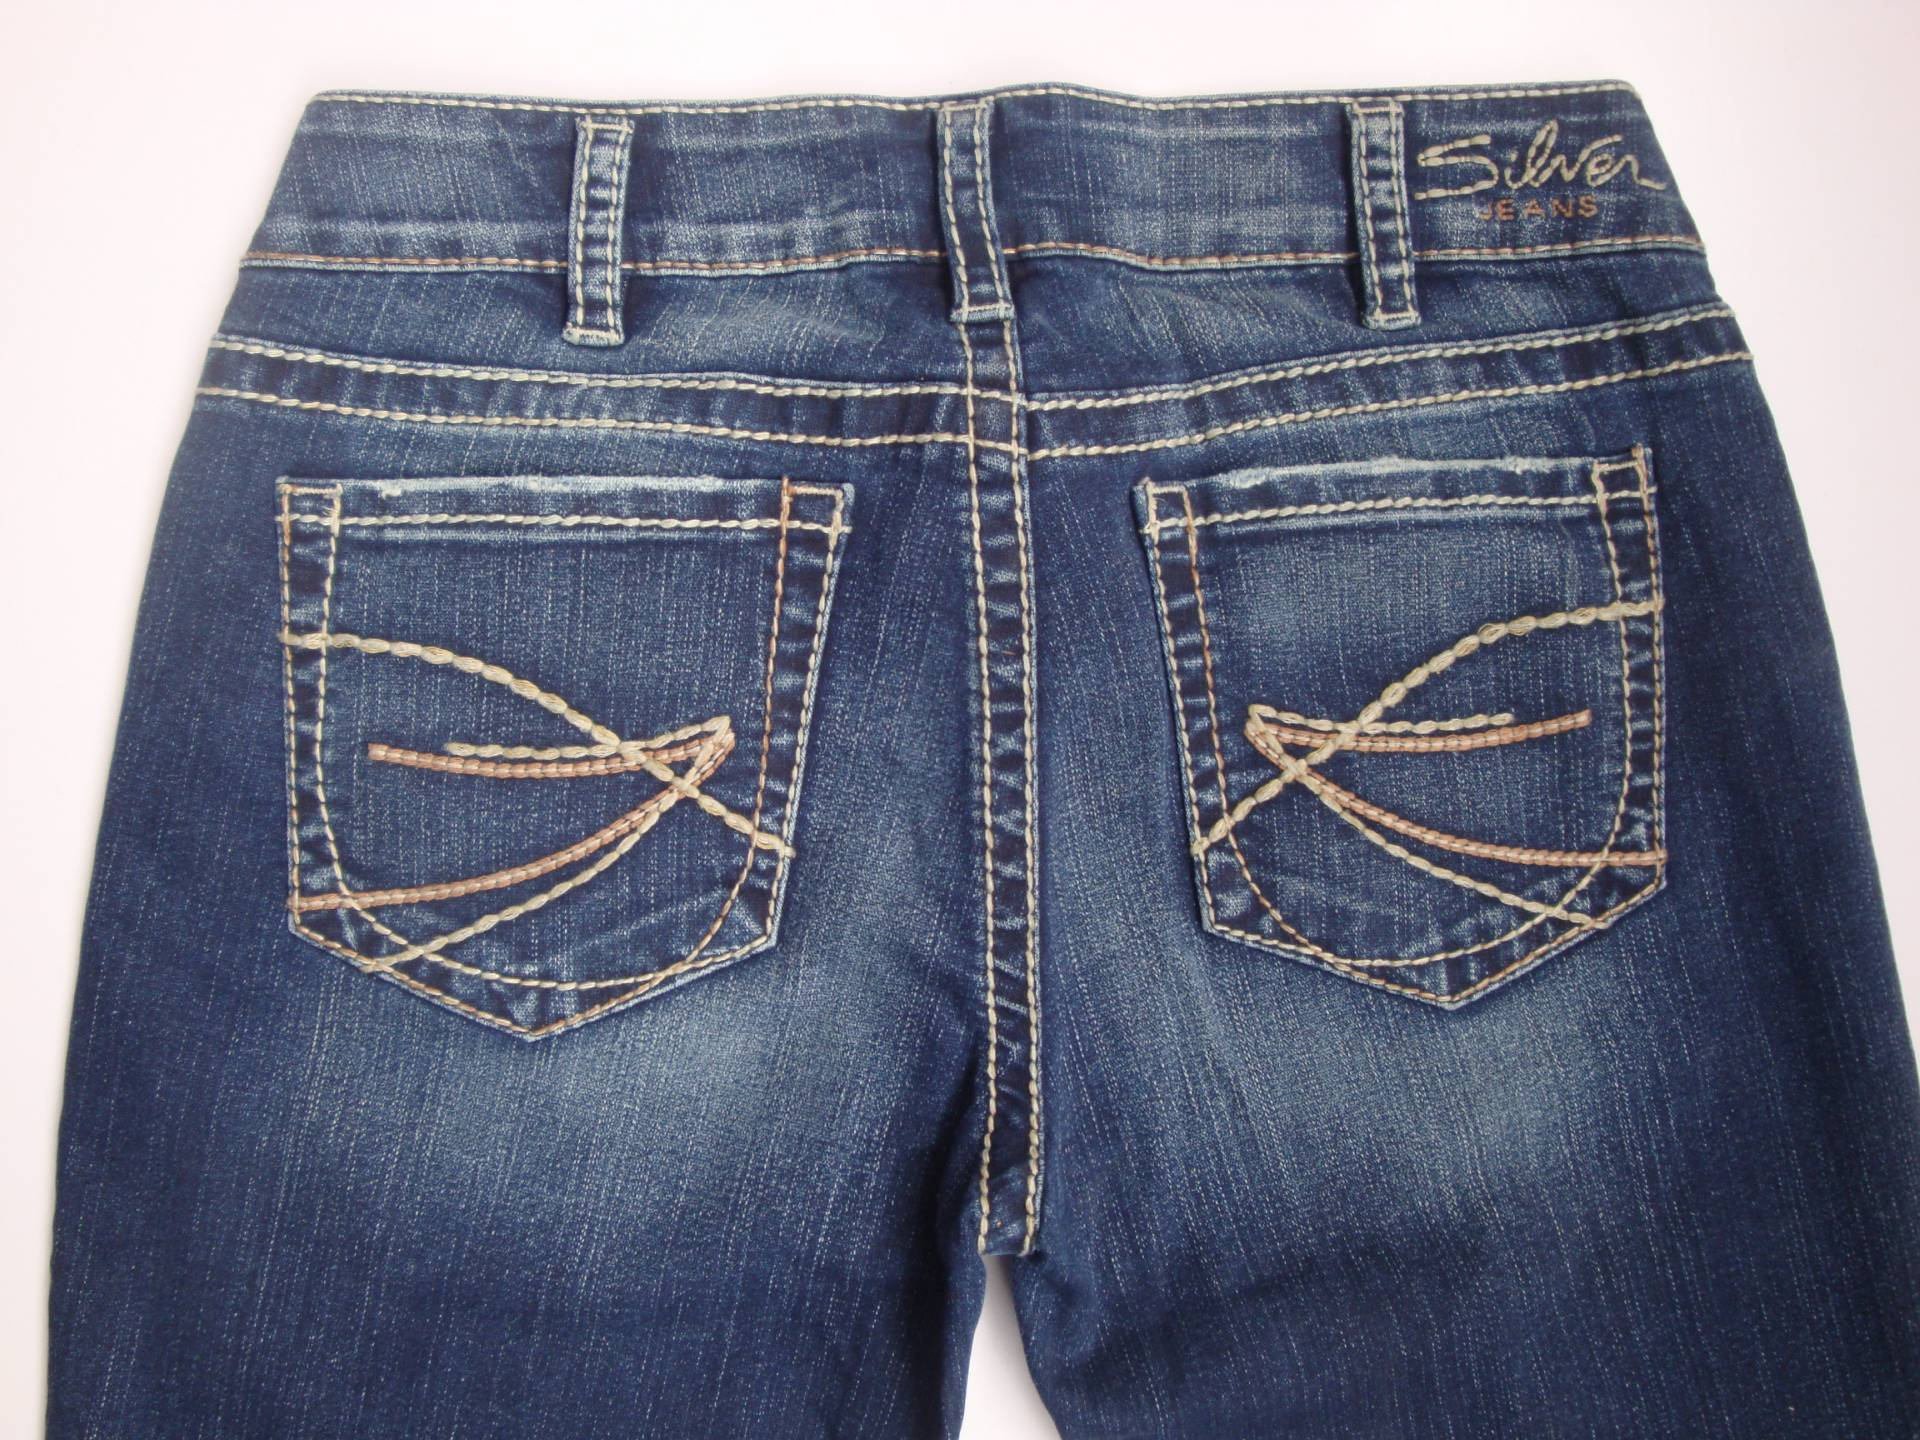 New Silver Jeans SUKI Capri Mid-Rise Good Quality and Price